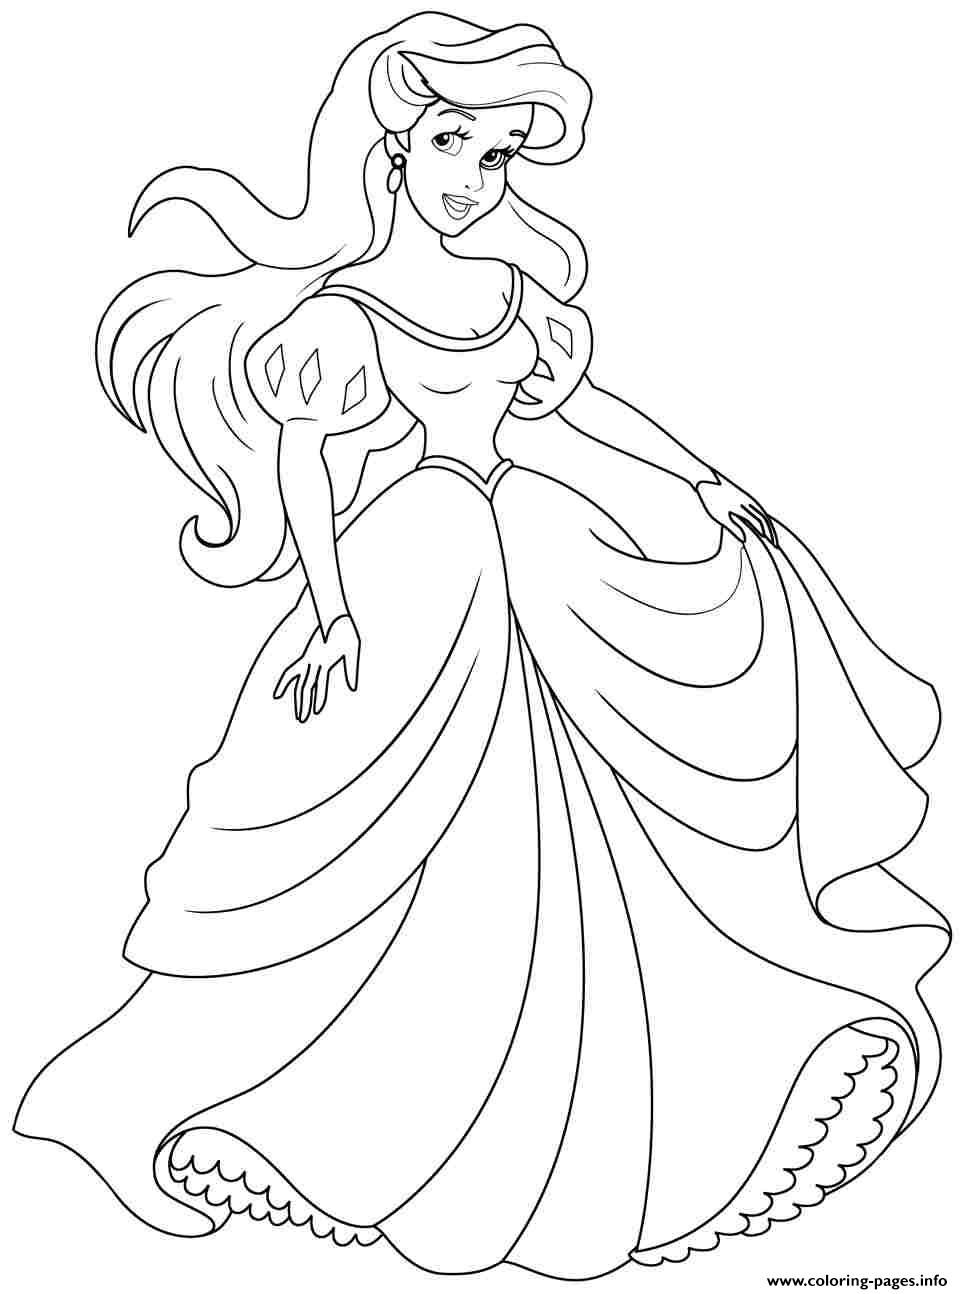 Colouring Pages Disney Princess Printable : Print princess ariel human coloring pages